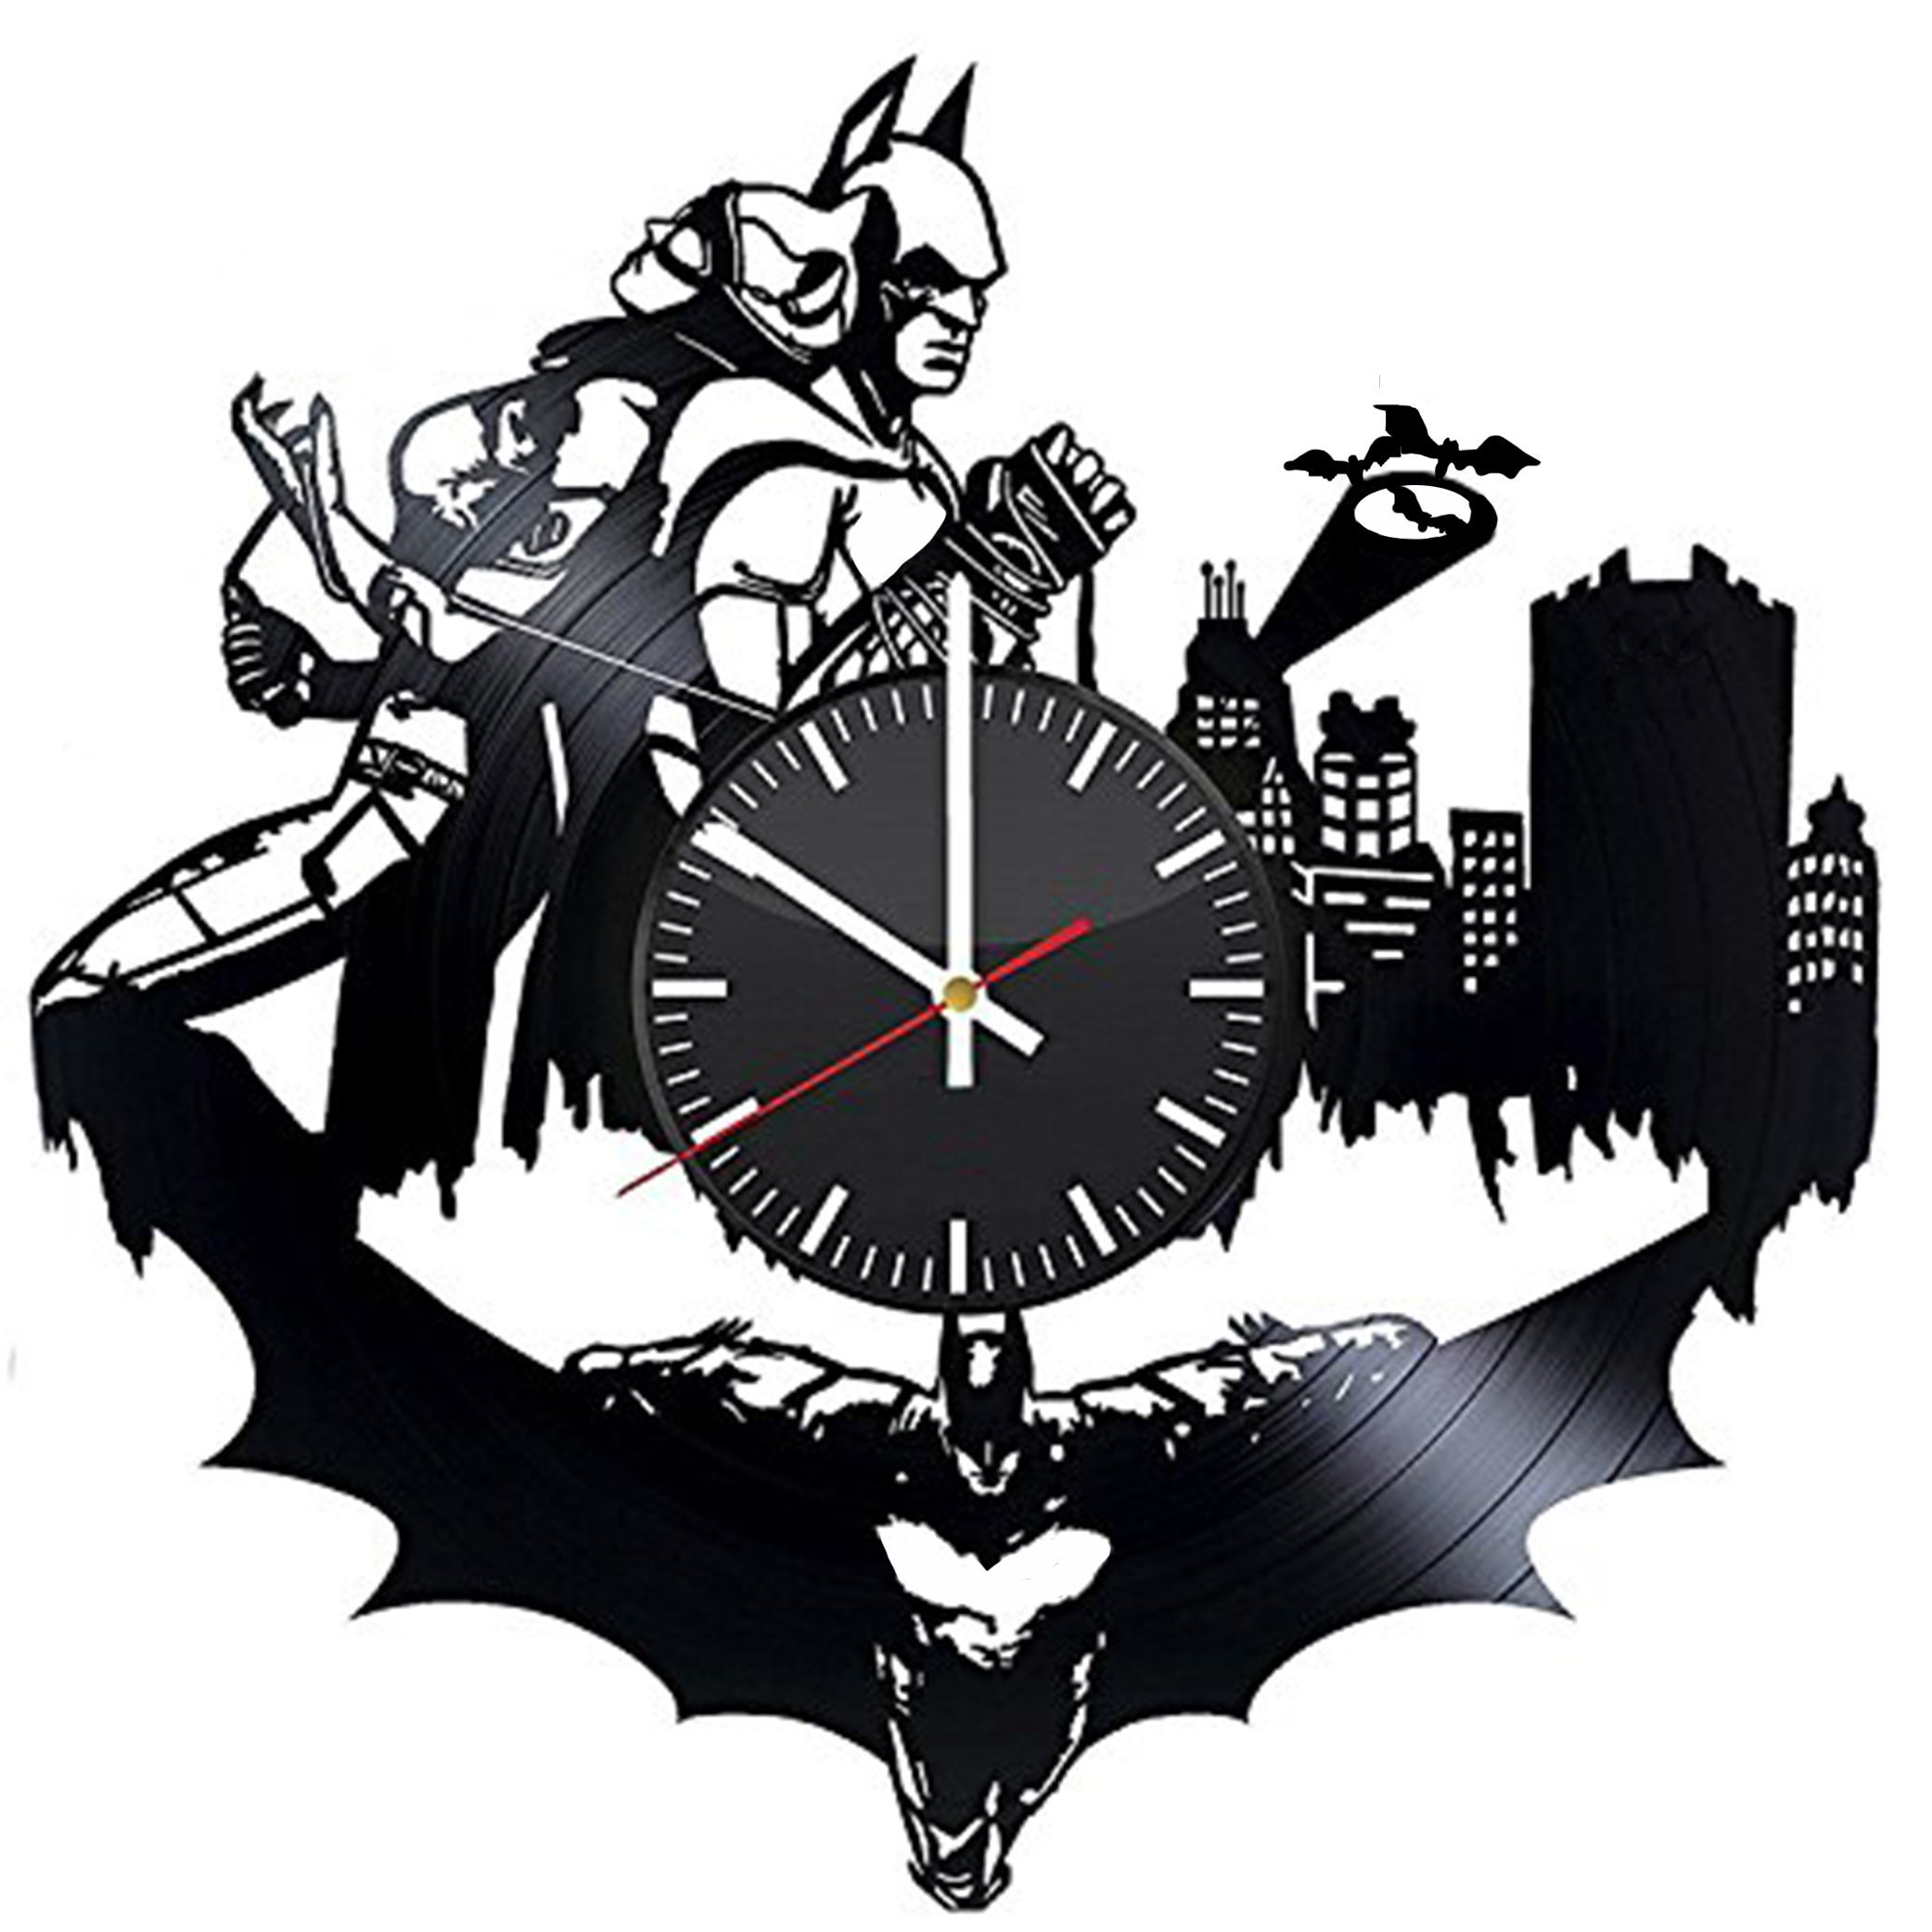 Welcome Everyday Arts Batman And Catwoman Vinyl Record Wall Clock - Get unique bedroom or bathroom wall decor - Gift ideas for boys and girls – DC Comics Legends Unique Modern Art Design